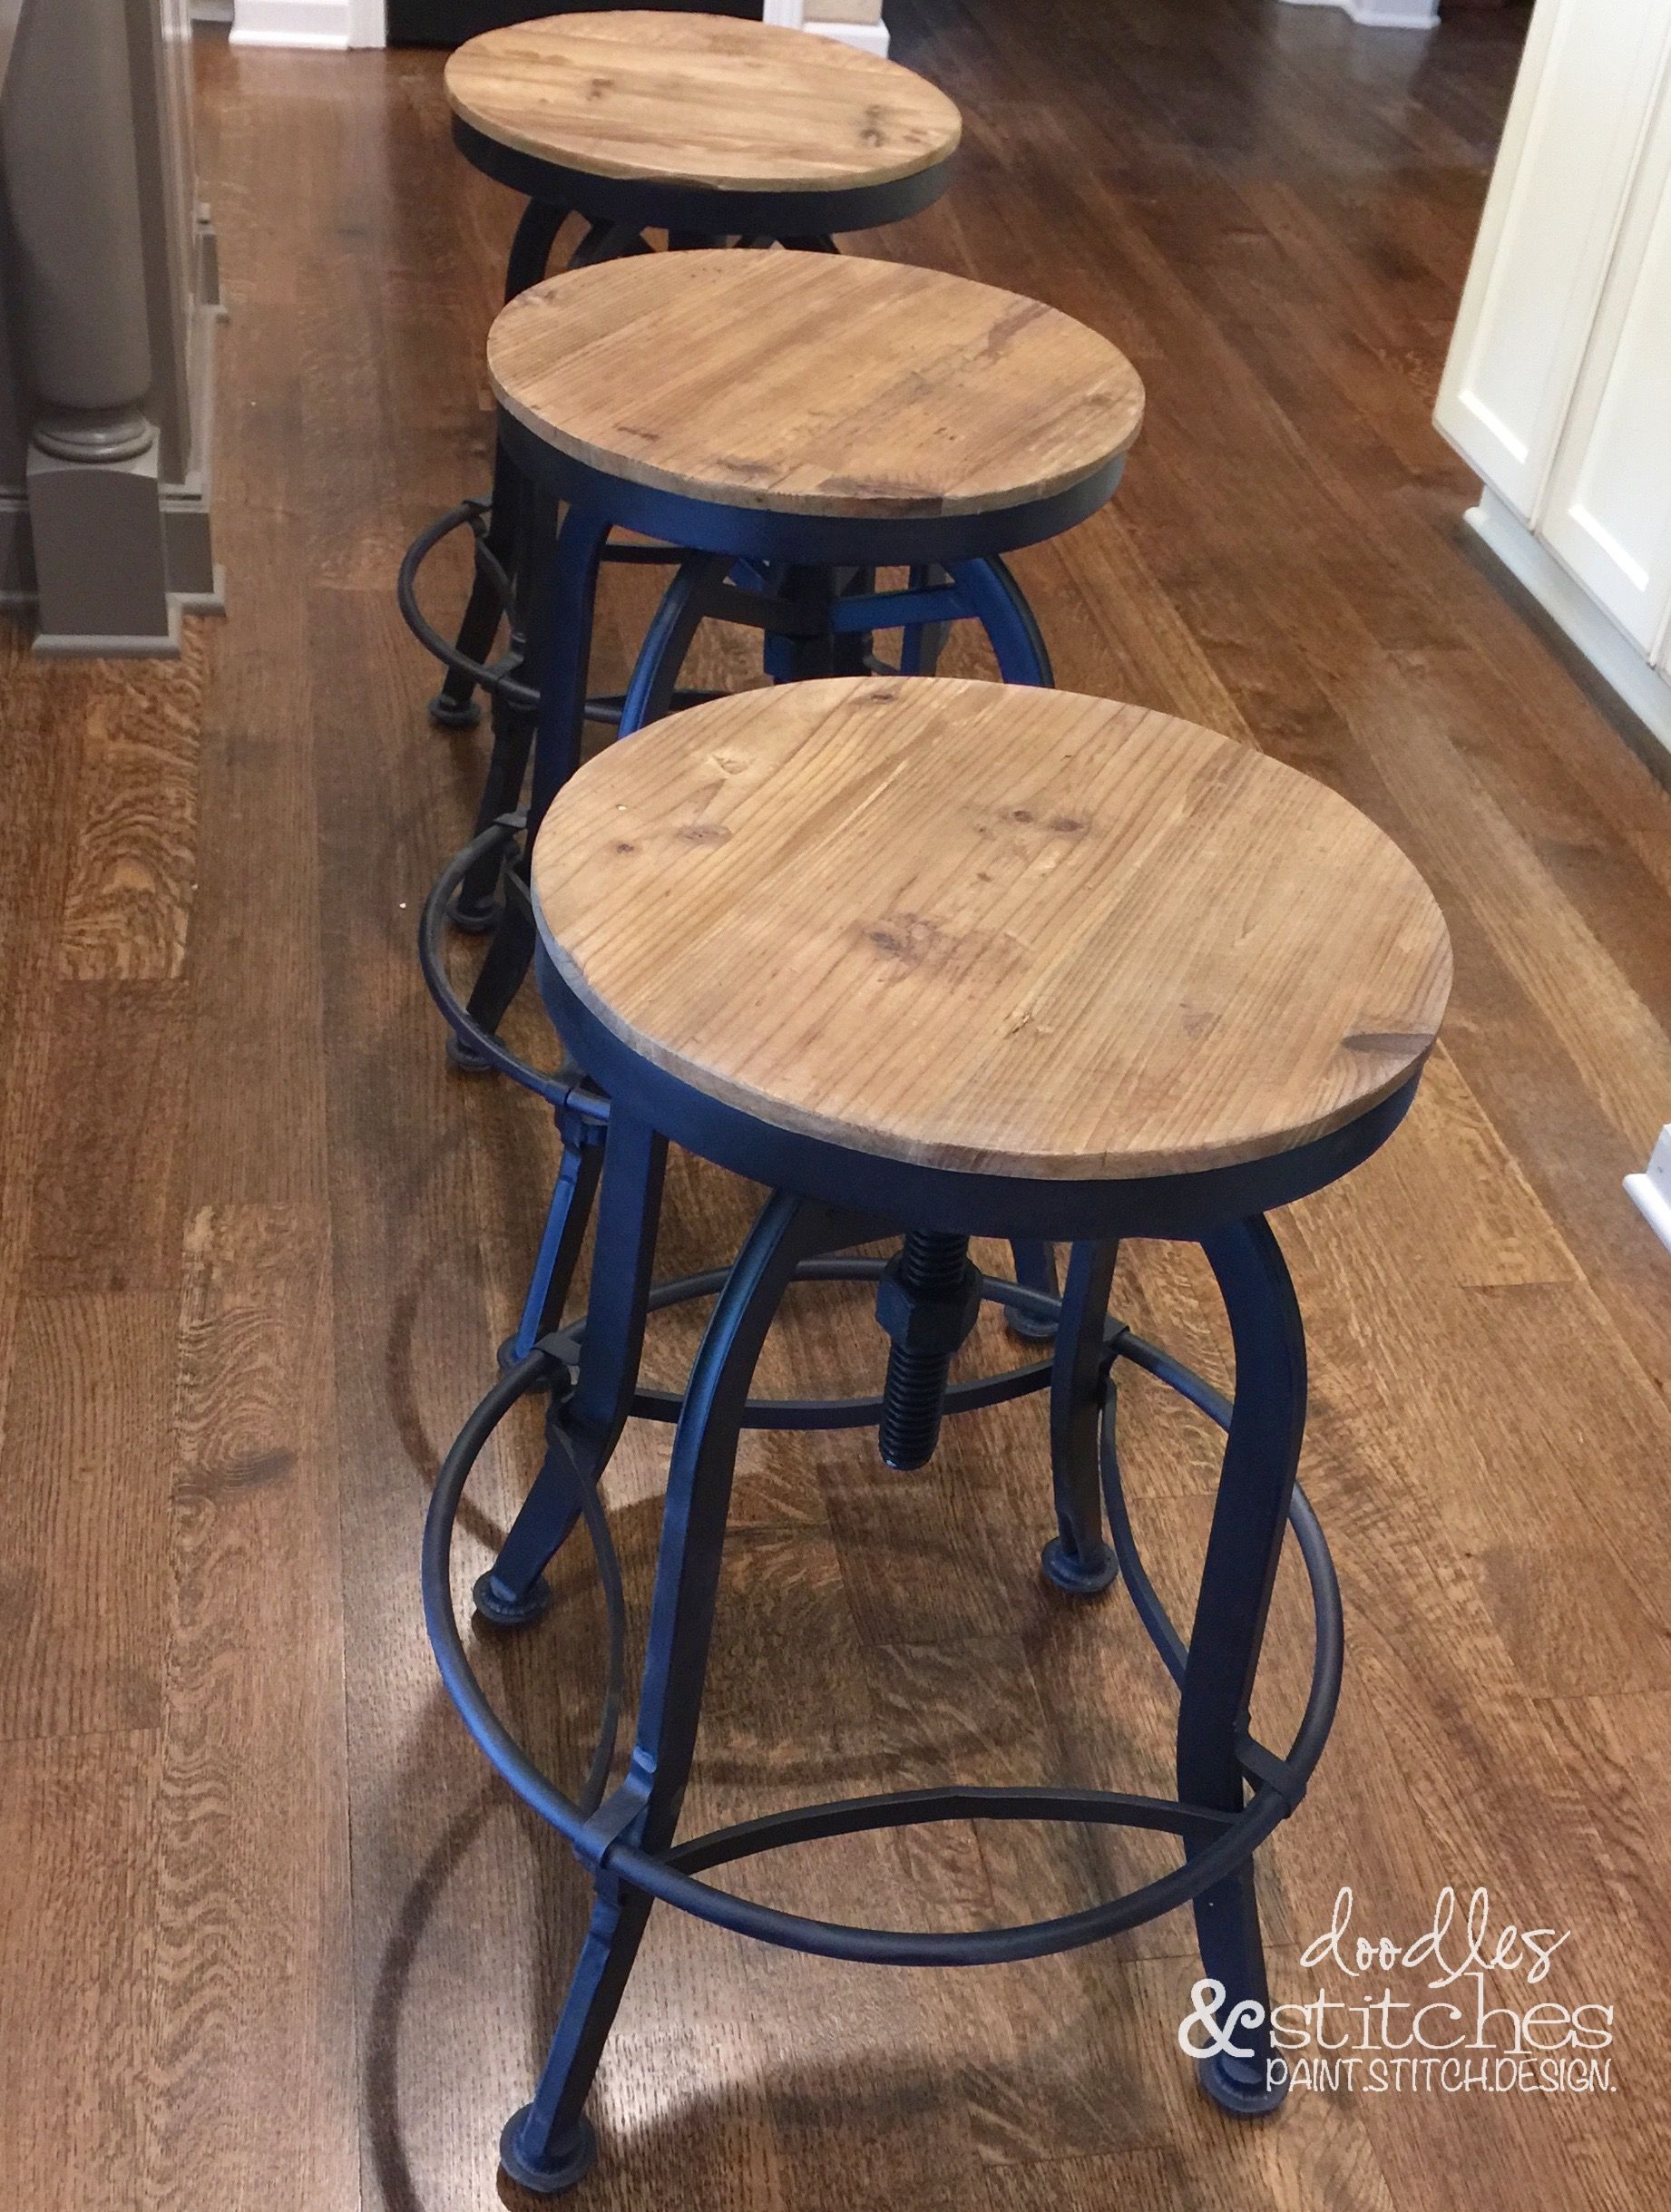 Joanna Gaines Farmhouse Bar Stools The Perfect Bar Stools Just Like The Ones Used On Fixer